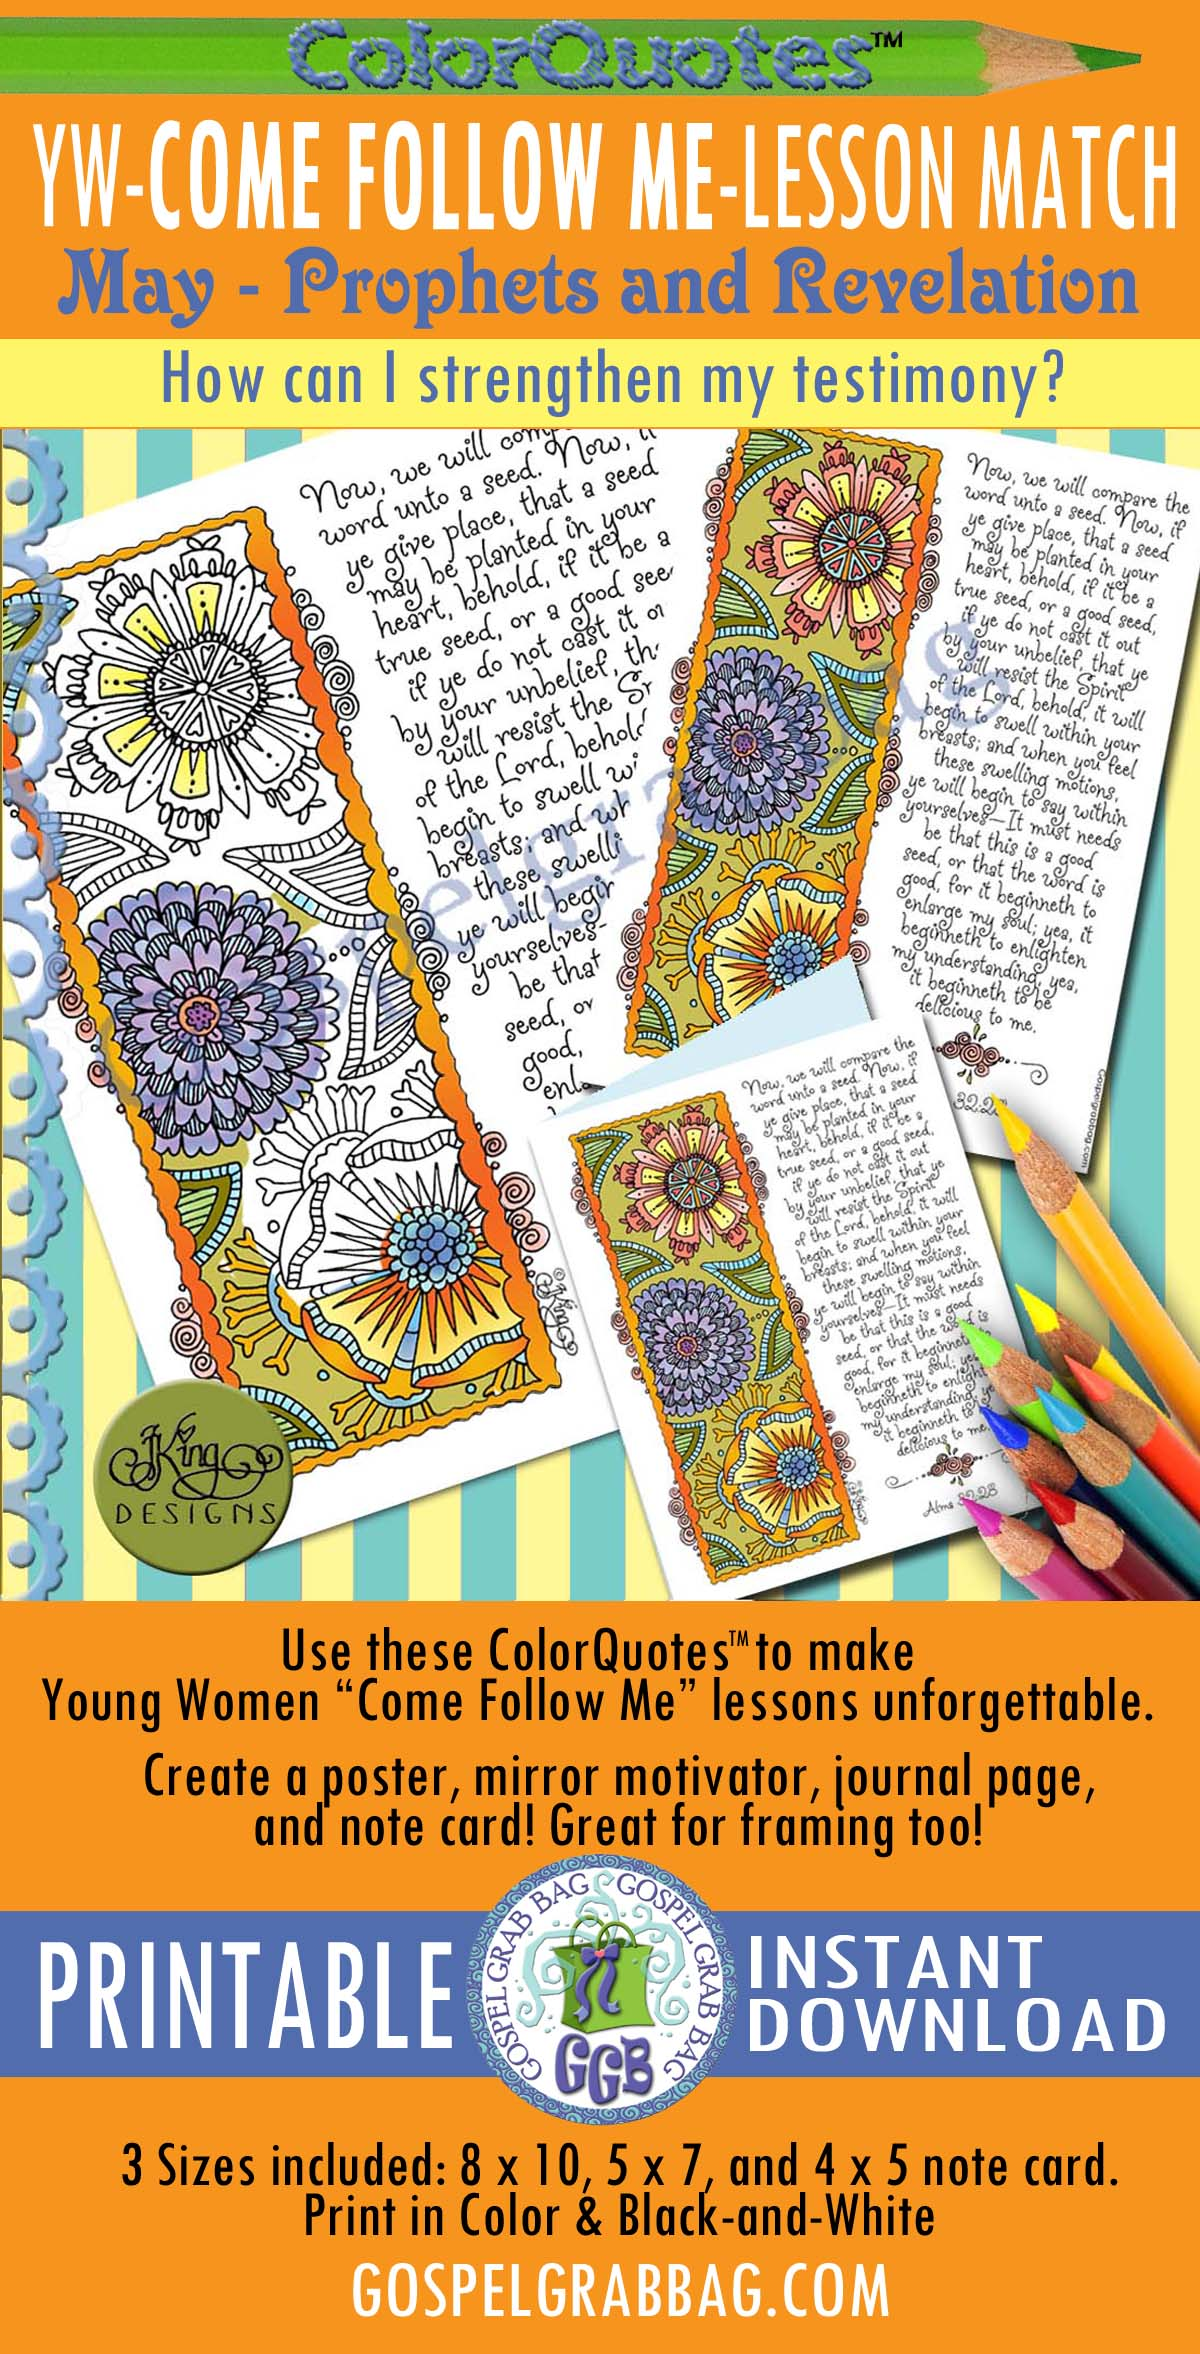 "Quotes to Color - ColorQuotes for May Theme: Prophets and Revelation PRINTABLES, LESSON 5 How can I strengthen my testimony?, printables, GospelGrabBag.com, Alma 32:28 ""Now, we will compare the word unto a seed. Now, if ye give place, that a seed may be planted in your heart, behold, if it be a true seed . . ."""